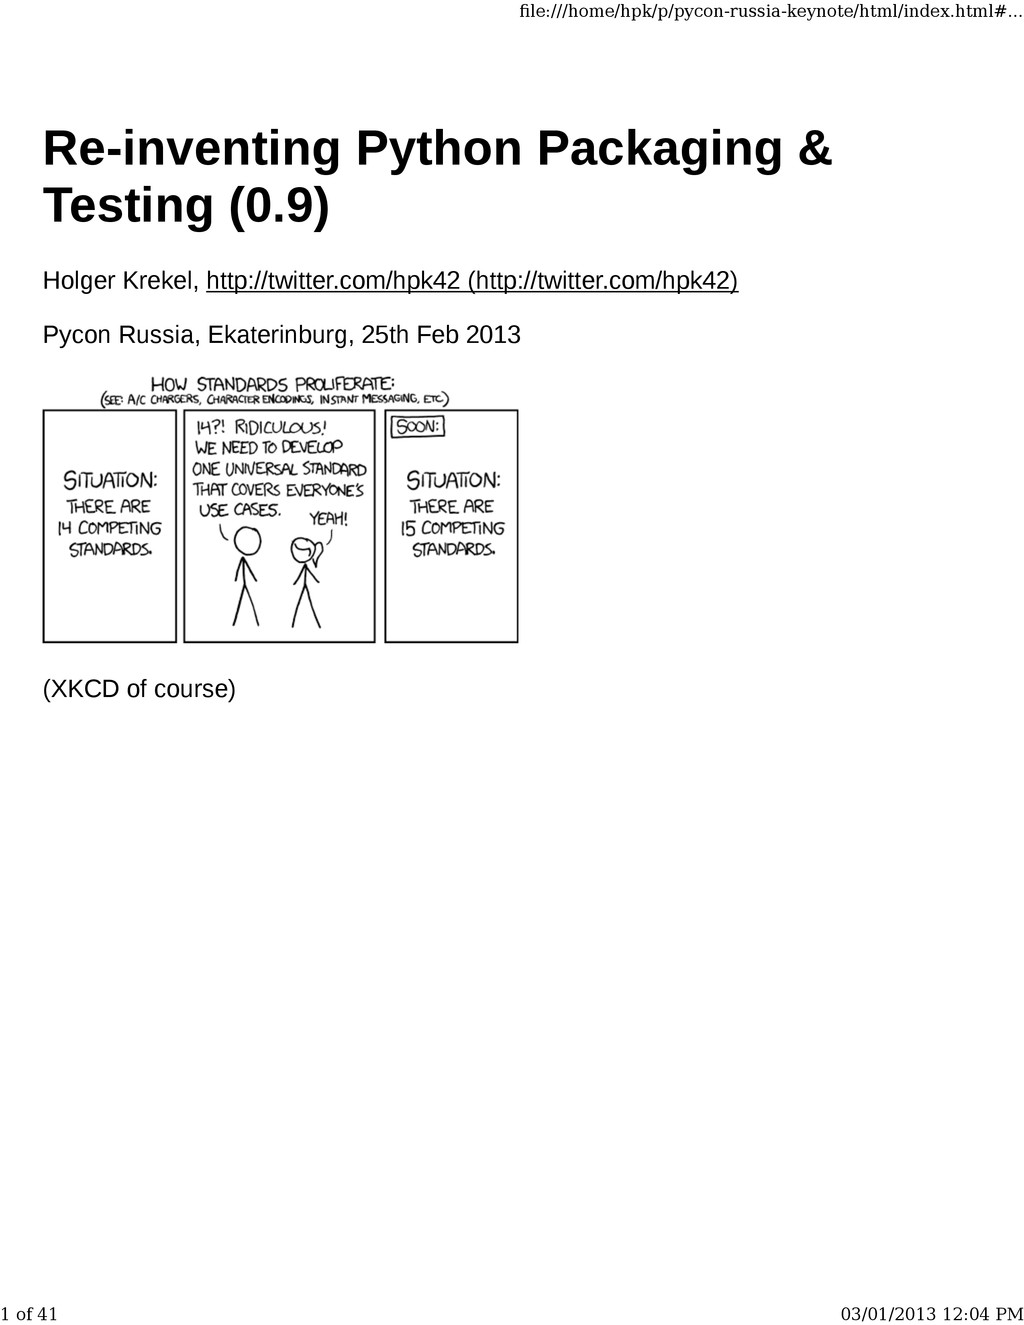 Re-inventing Python Packaging & Testing (0.9) H...